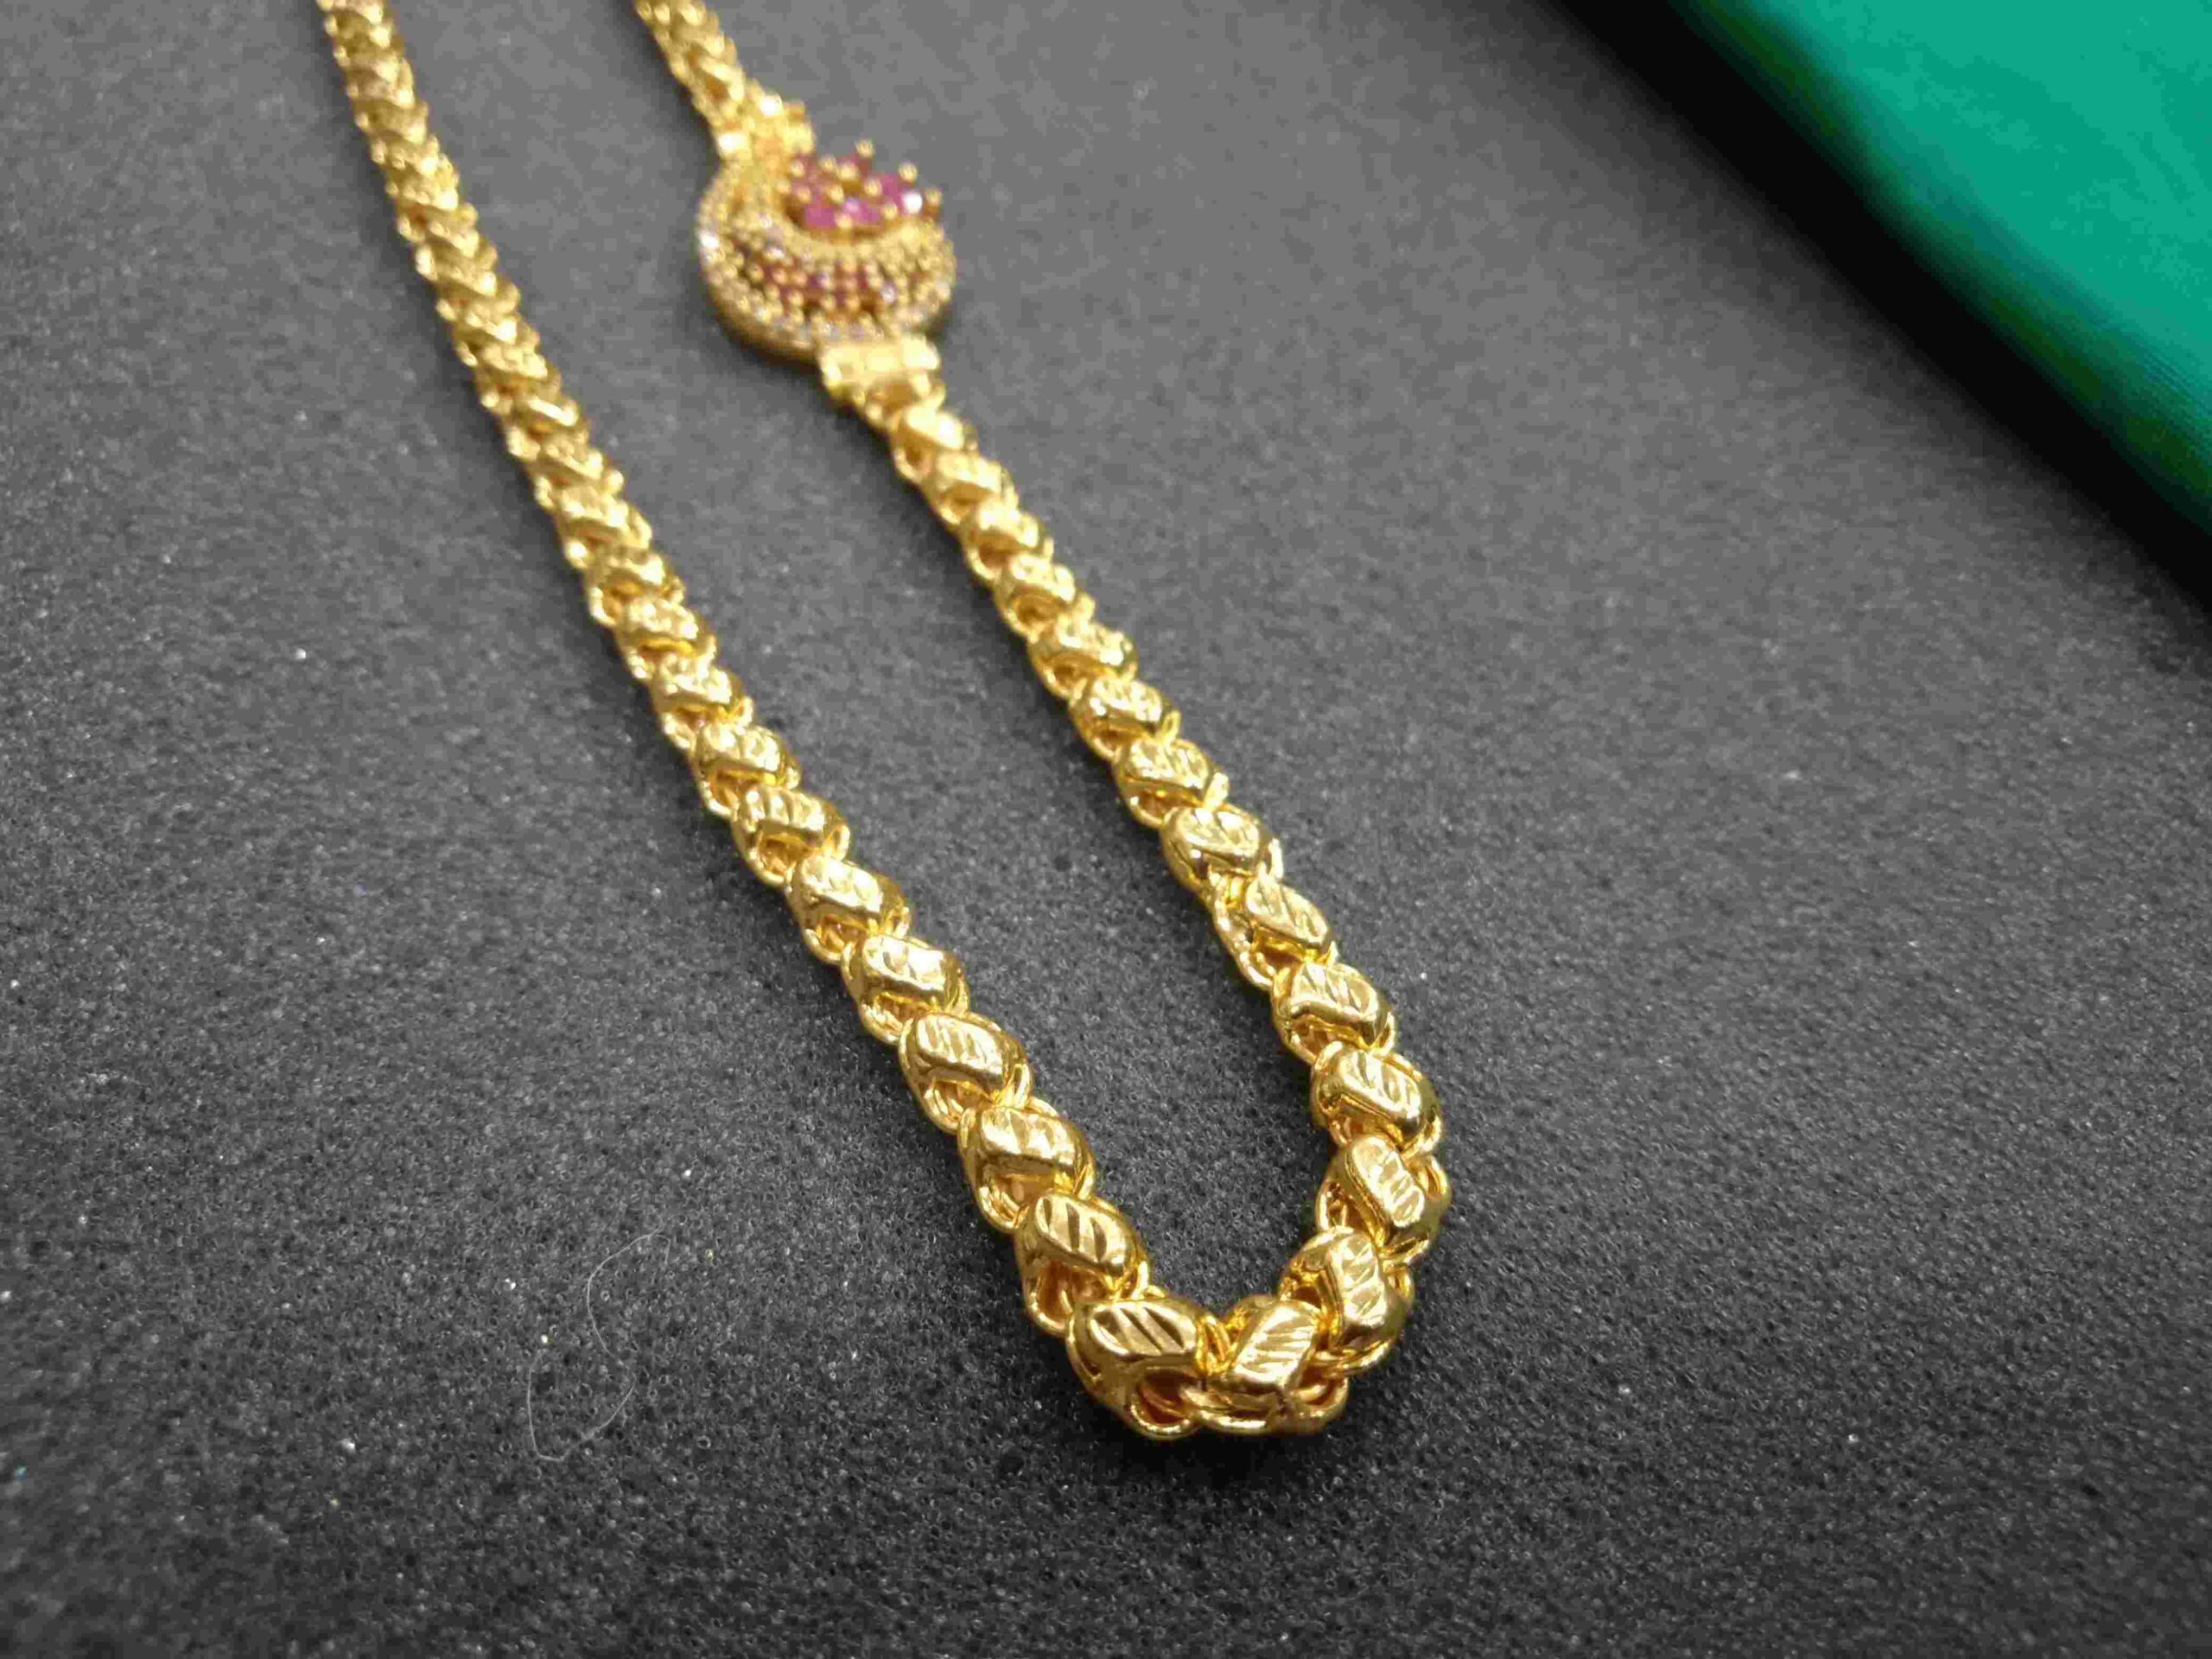 1 gram gold jewellery wholesale one gram gold jewellery long chains 1 gram gold chain price in india